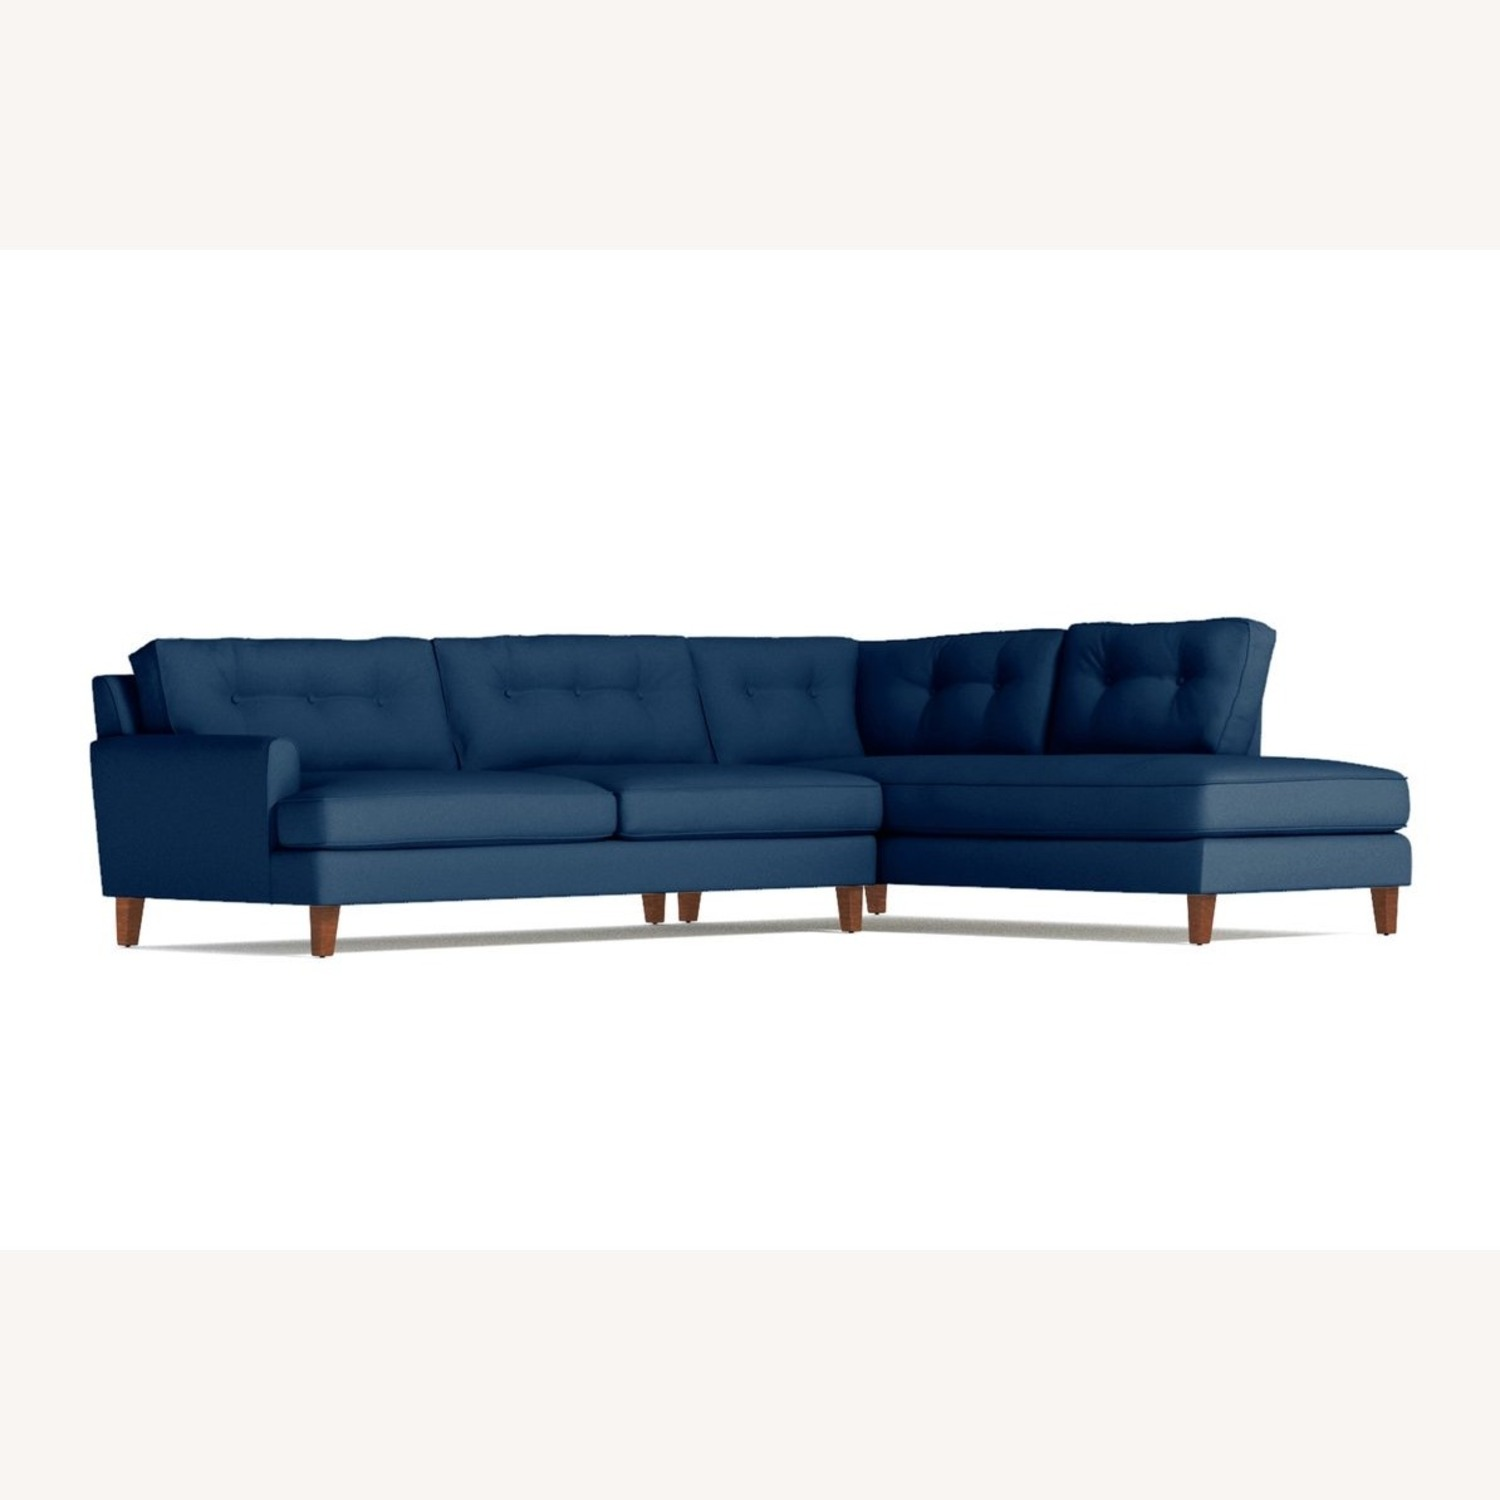 Trendy 2-Piece Sectional Sofa - image-4